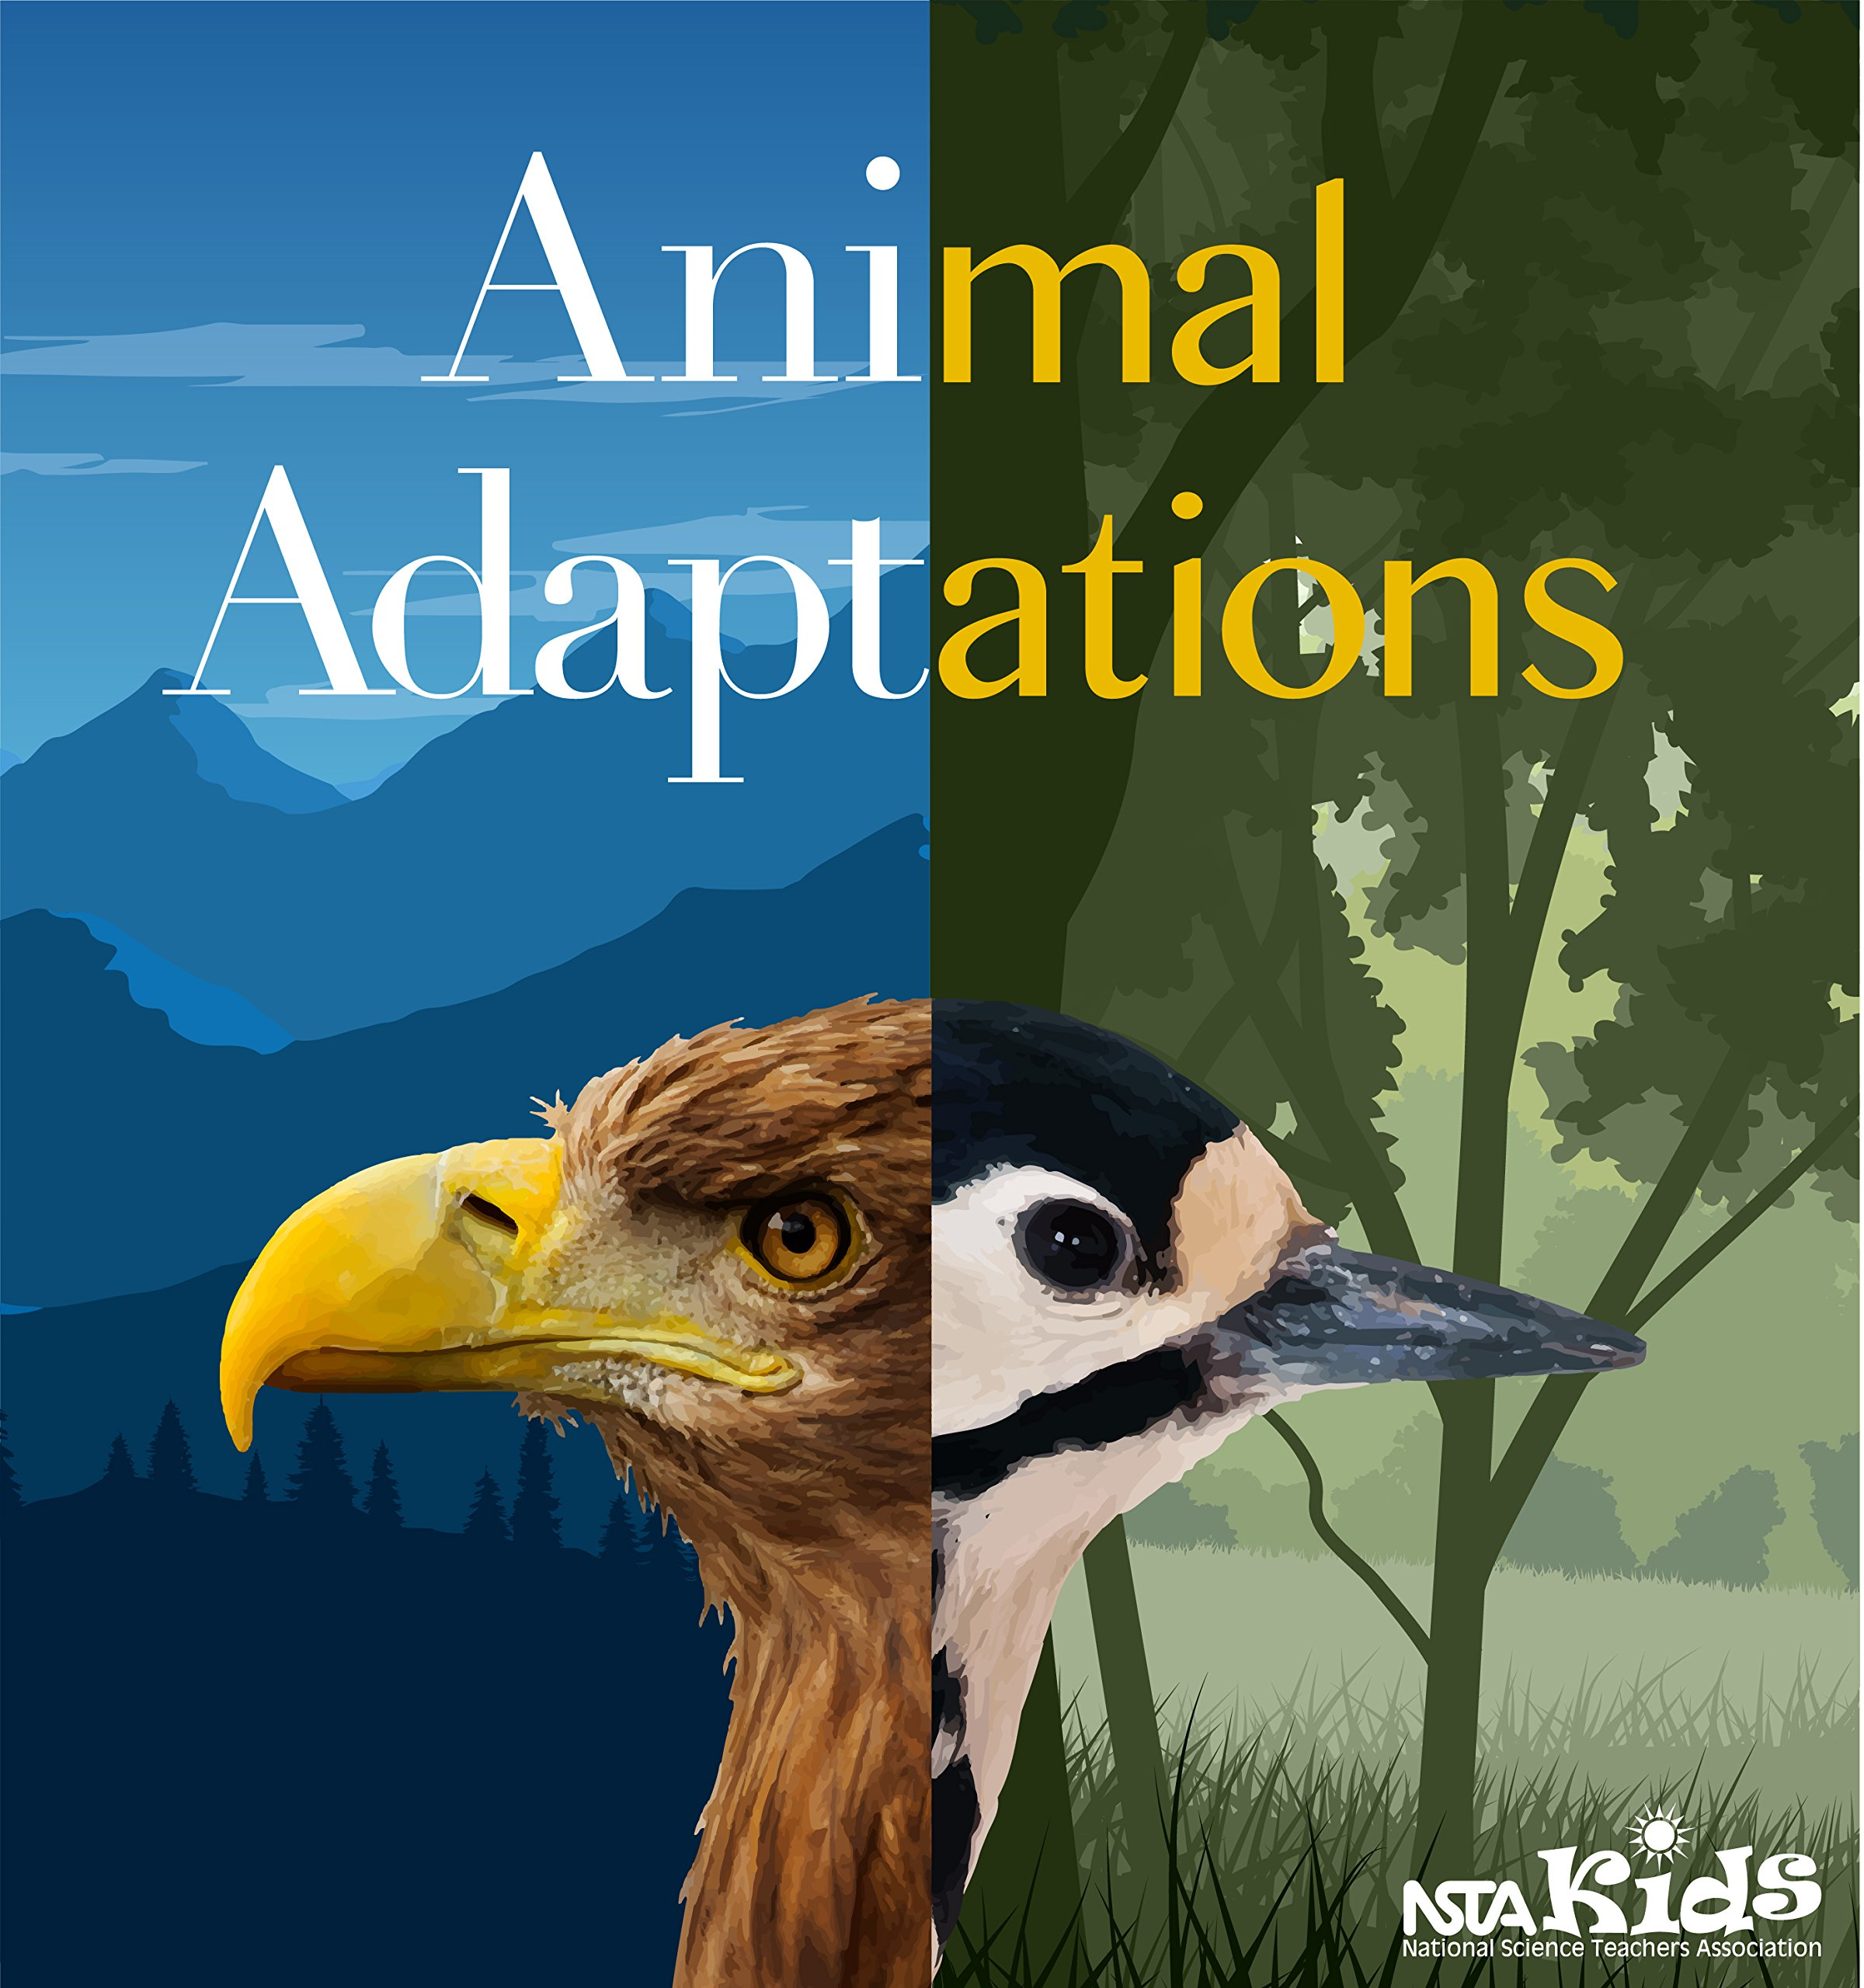 Animal Adaptations - PB439X: NSTA Press: 9781681405964: Amazon.com: Books